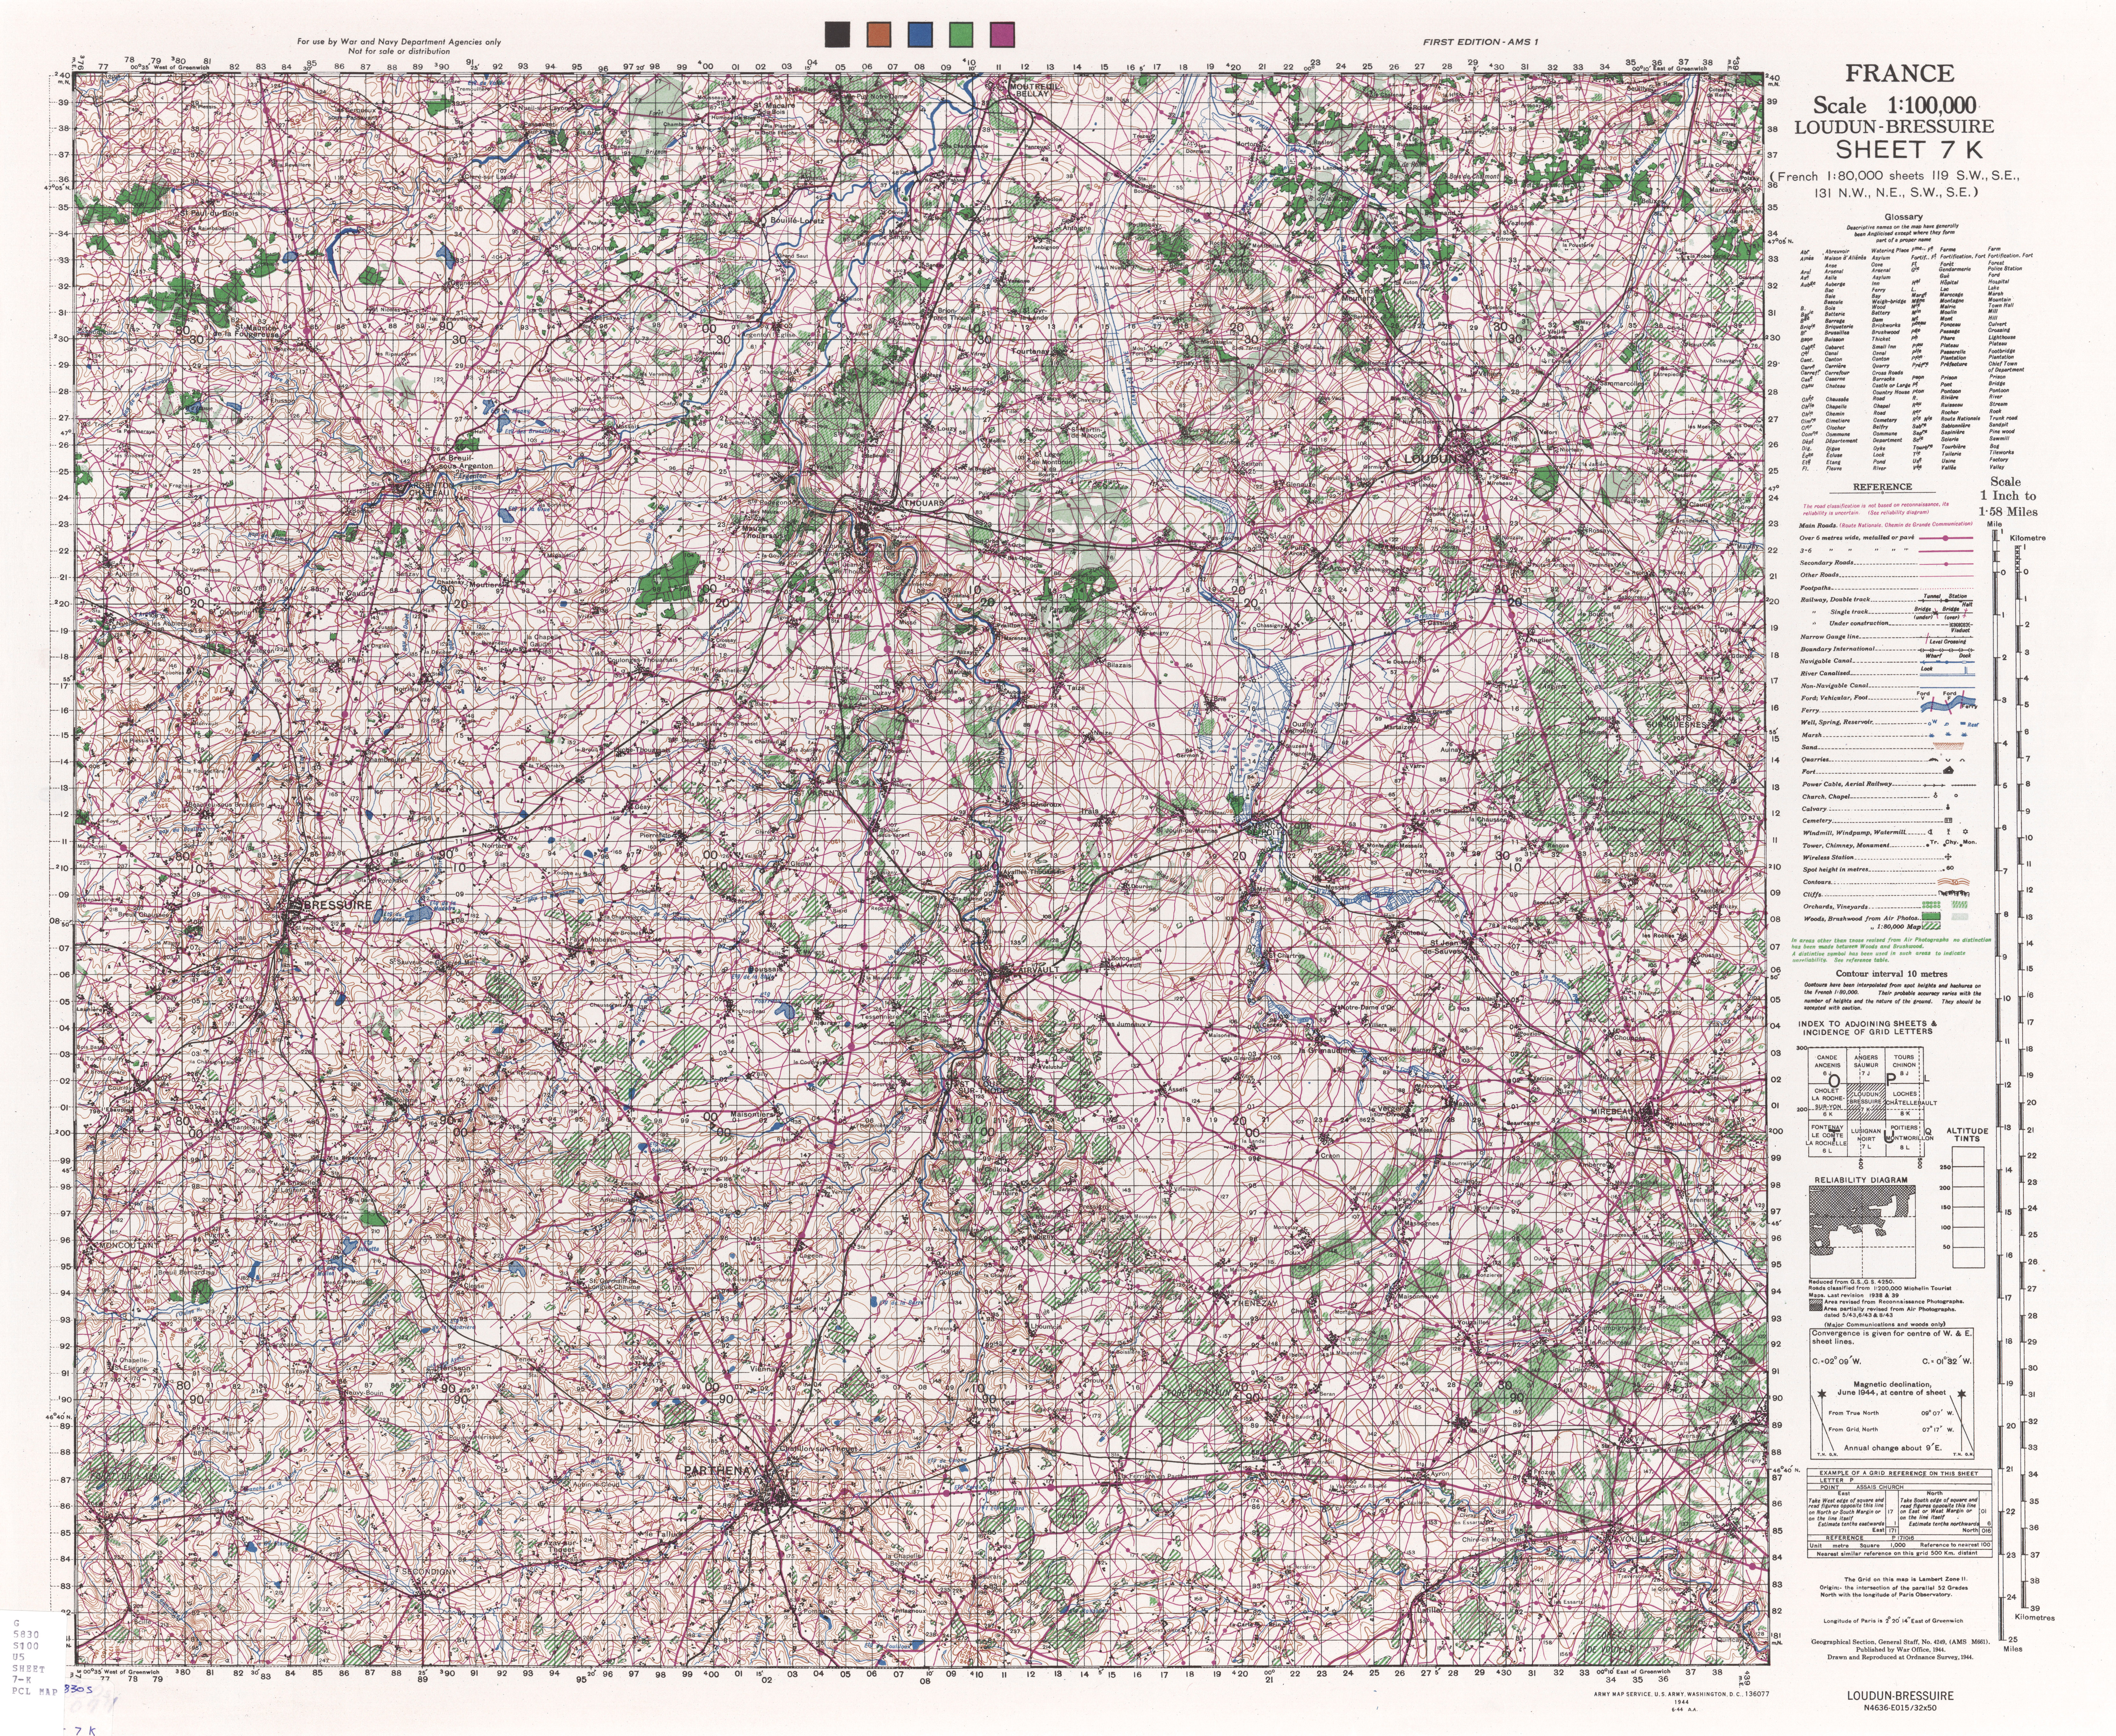 France AMS Topographic Maps - Perry-Castañeda Map ...